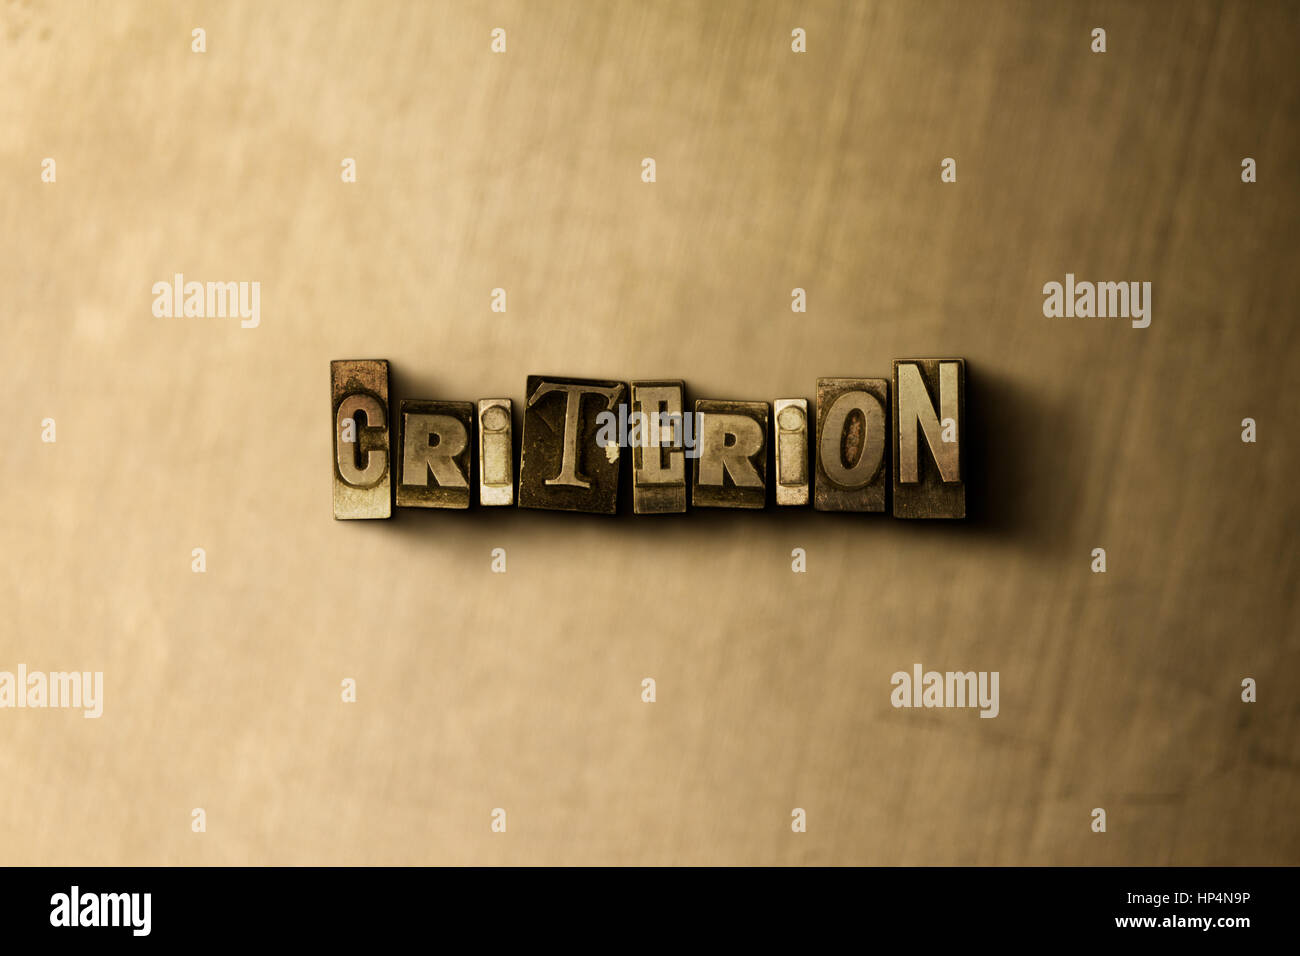 CRITERION - close-up of grungy vintage typeset word on metal backdrop. Royalty free stock illustration.  Can be - Stock Image